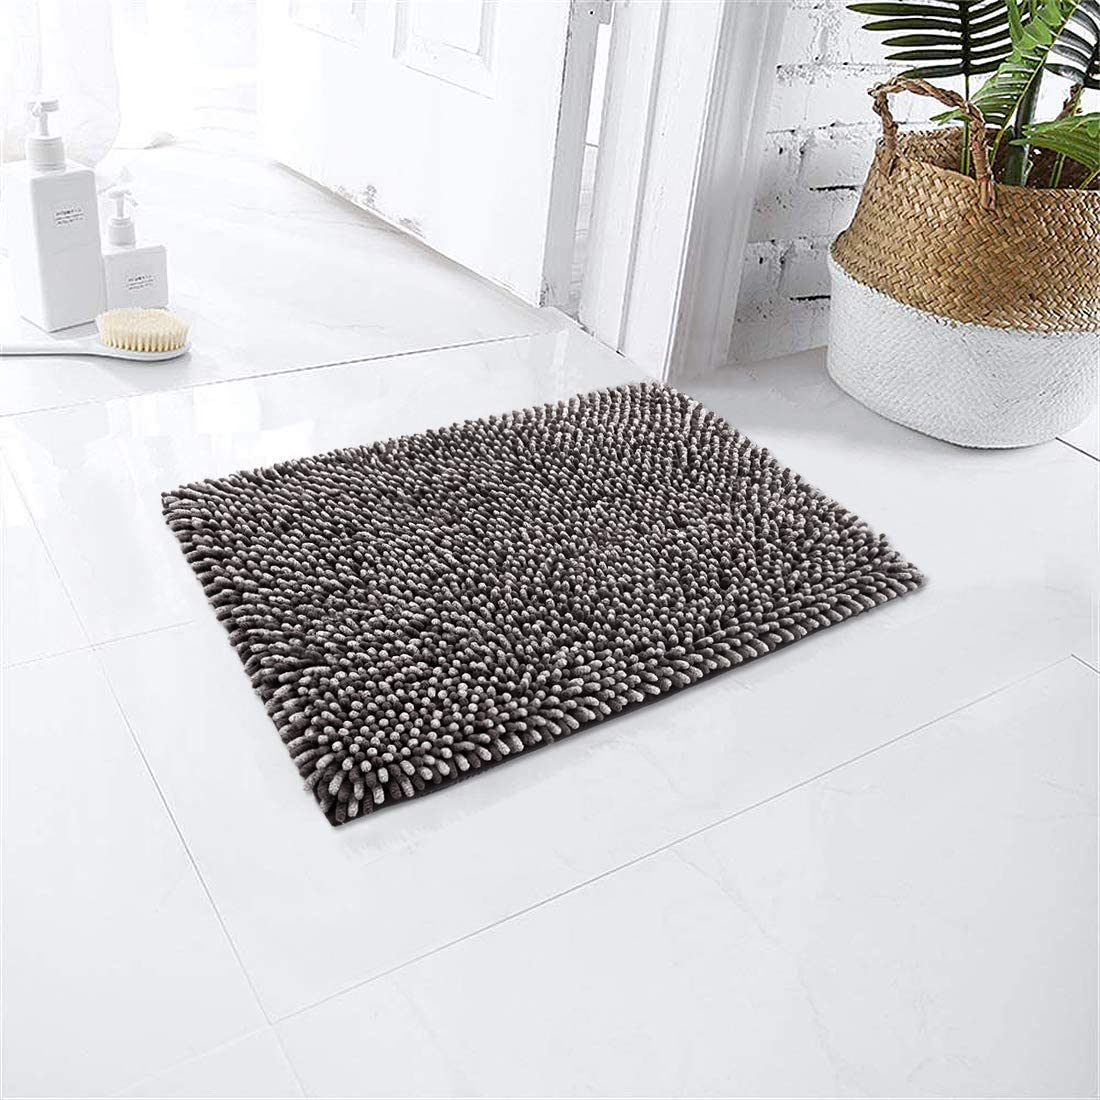 Bathroom Rug Cosy HOMEER17x24 Inch Bath Polyes Made 100% Rugs Selling In stock of